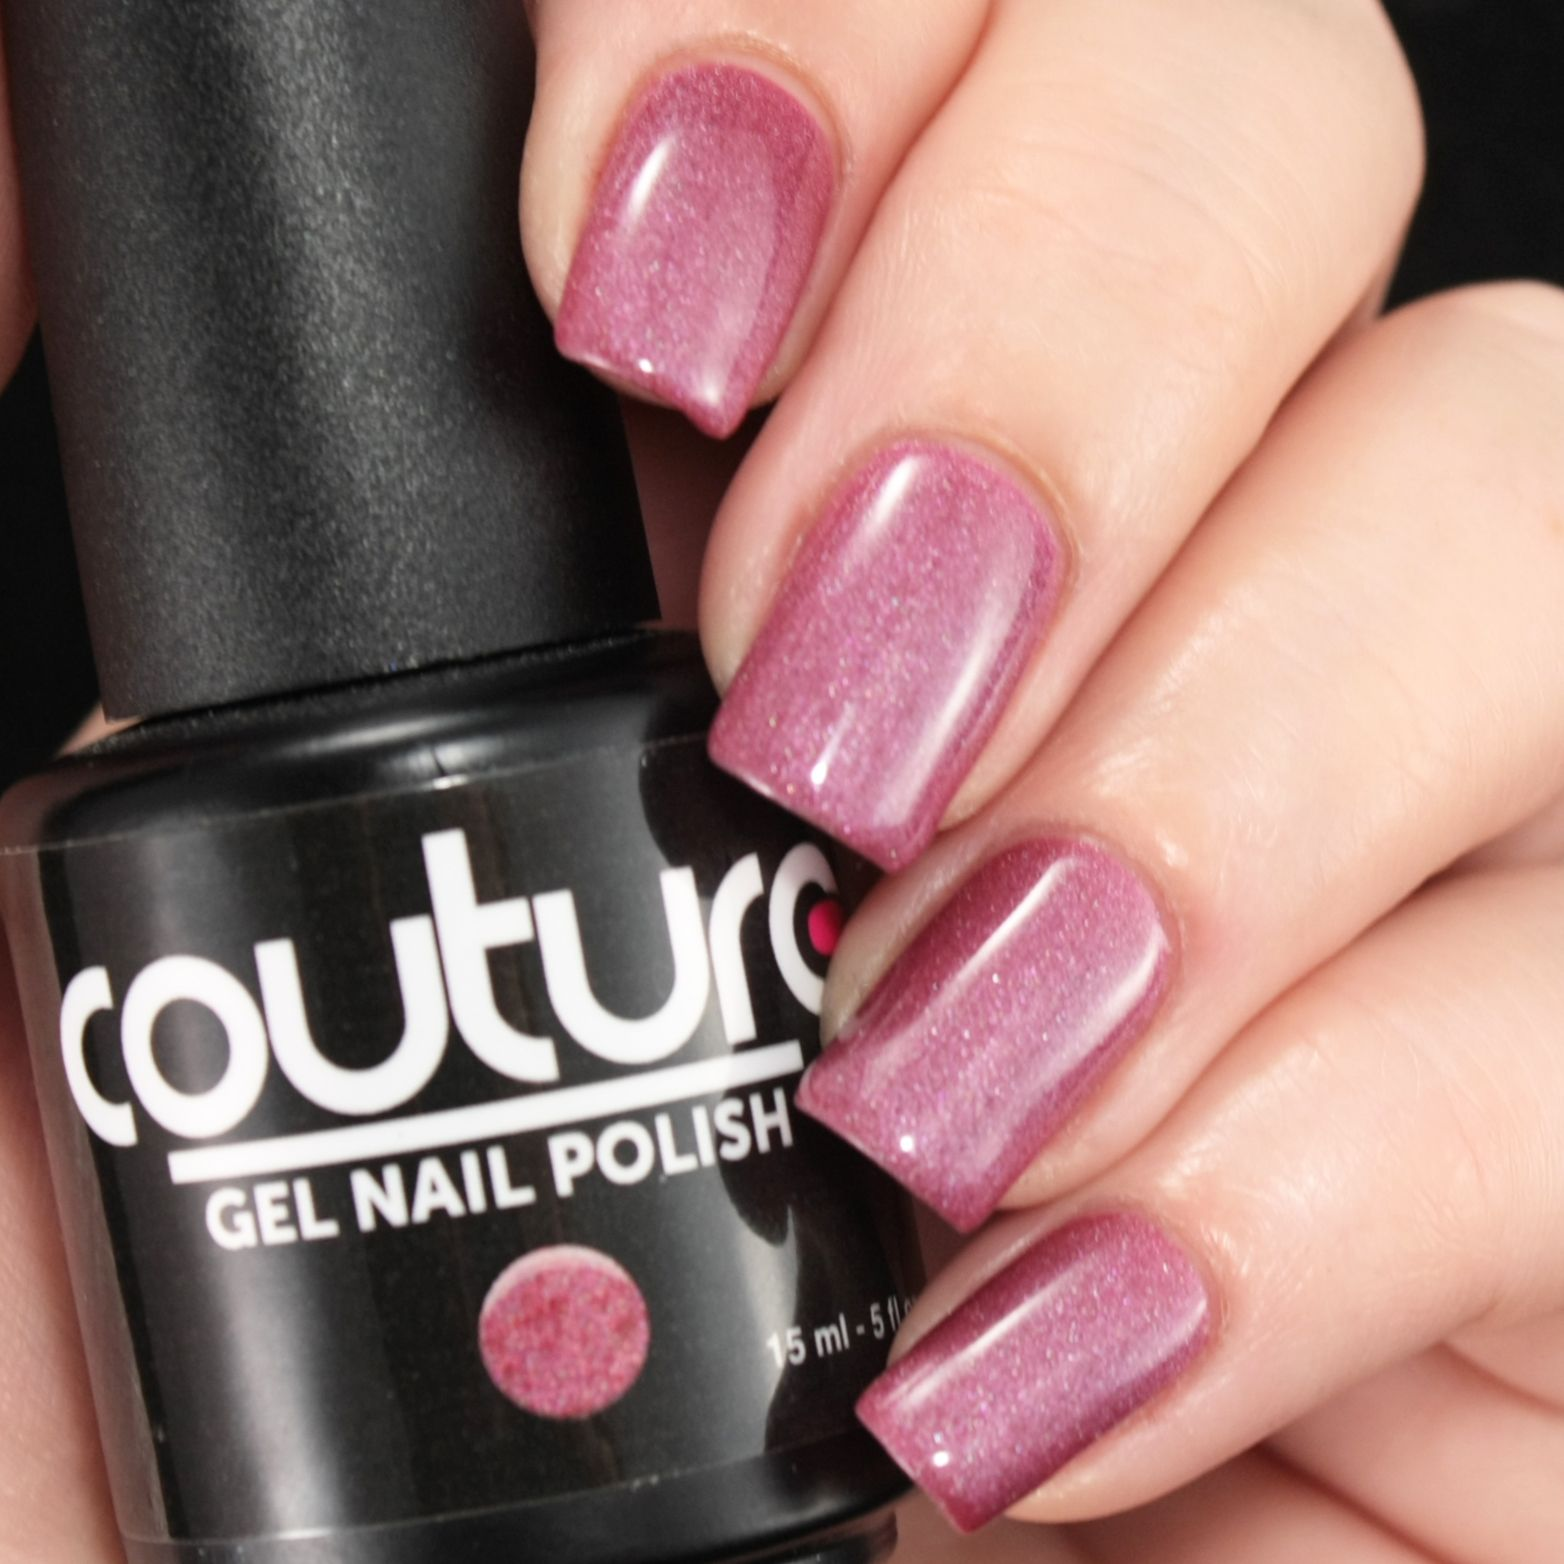 Couture Gel Nail Polish 70 Amethyst Crush